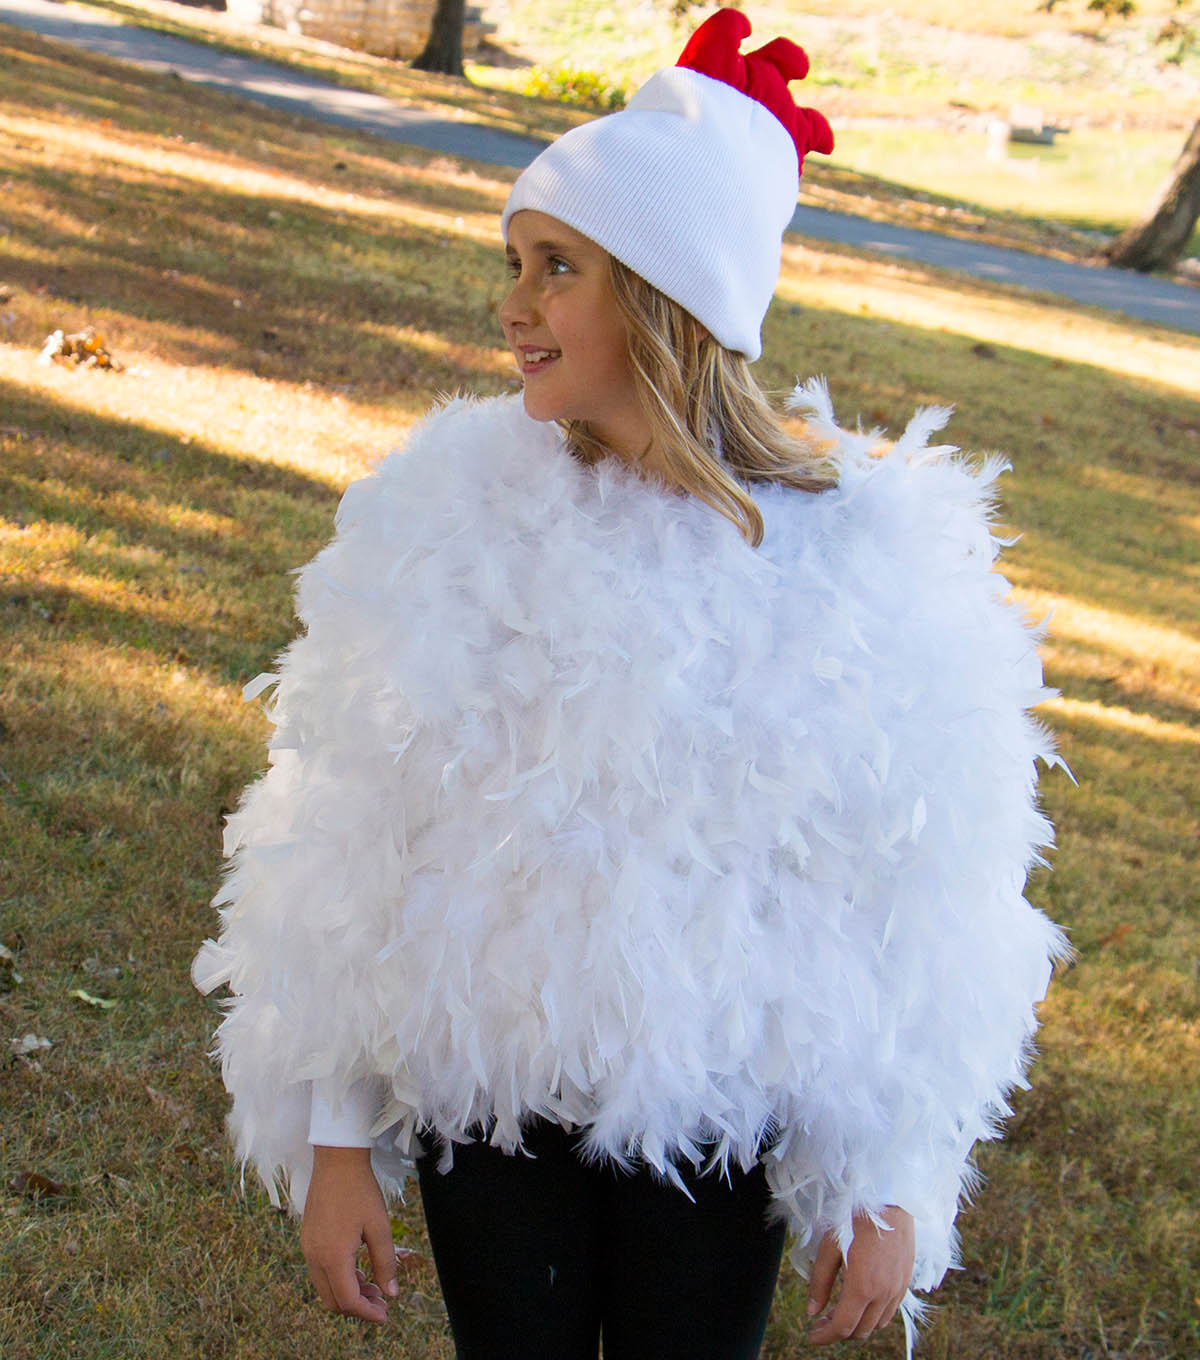 How To Make A Cute Chicken Costume & How To Make A Cute Chicken Costume | JOANN